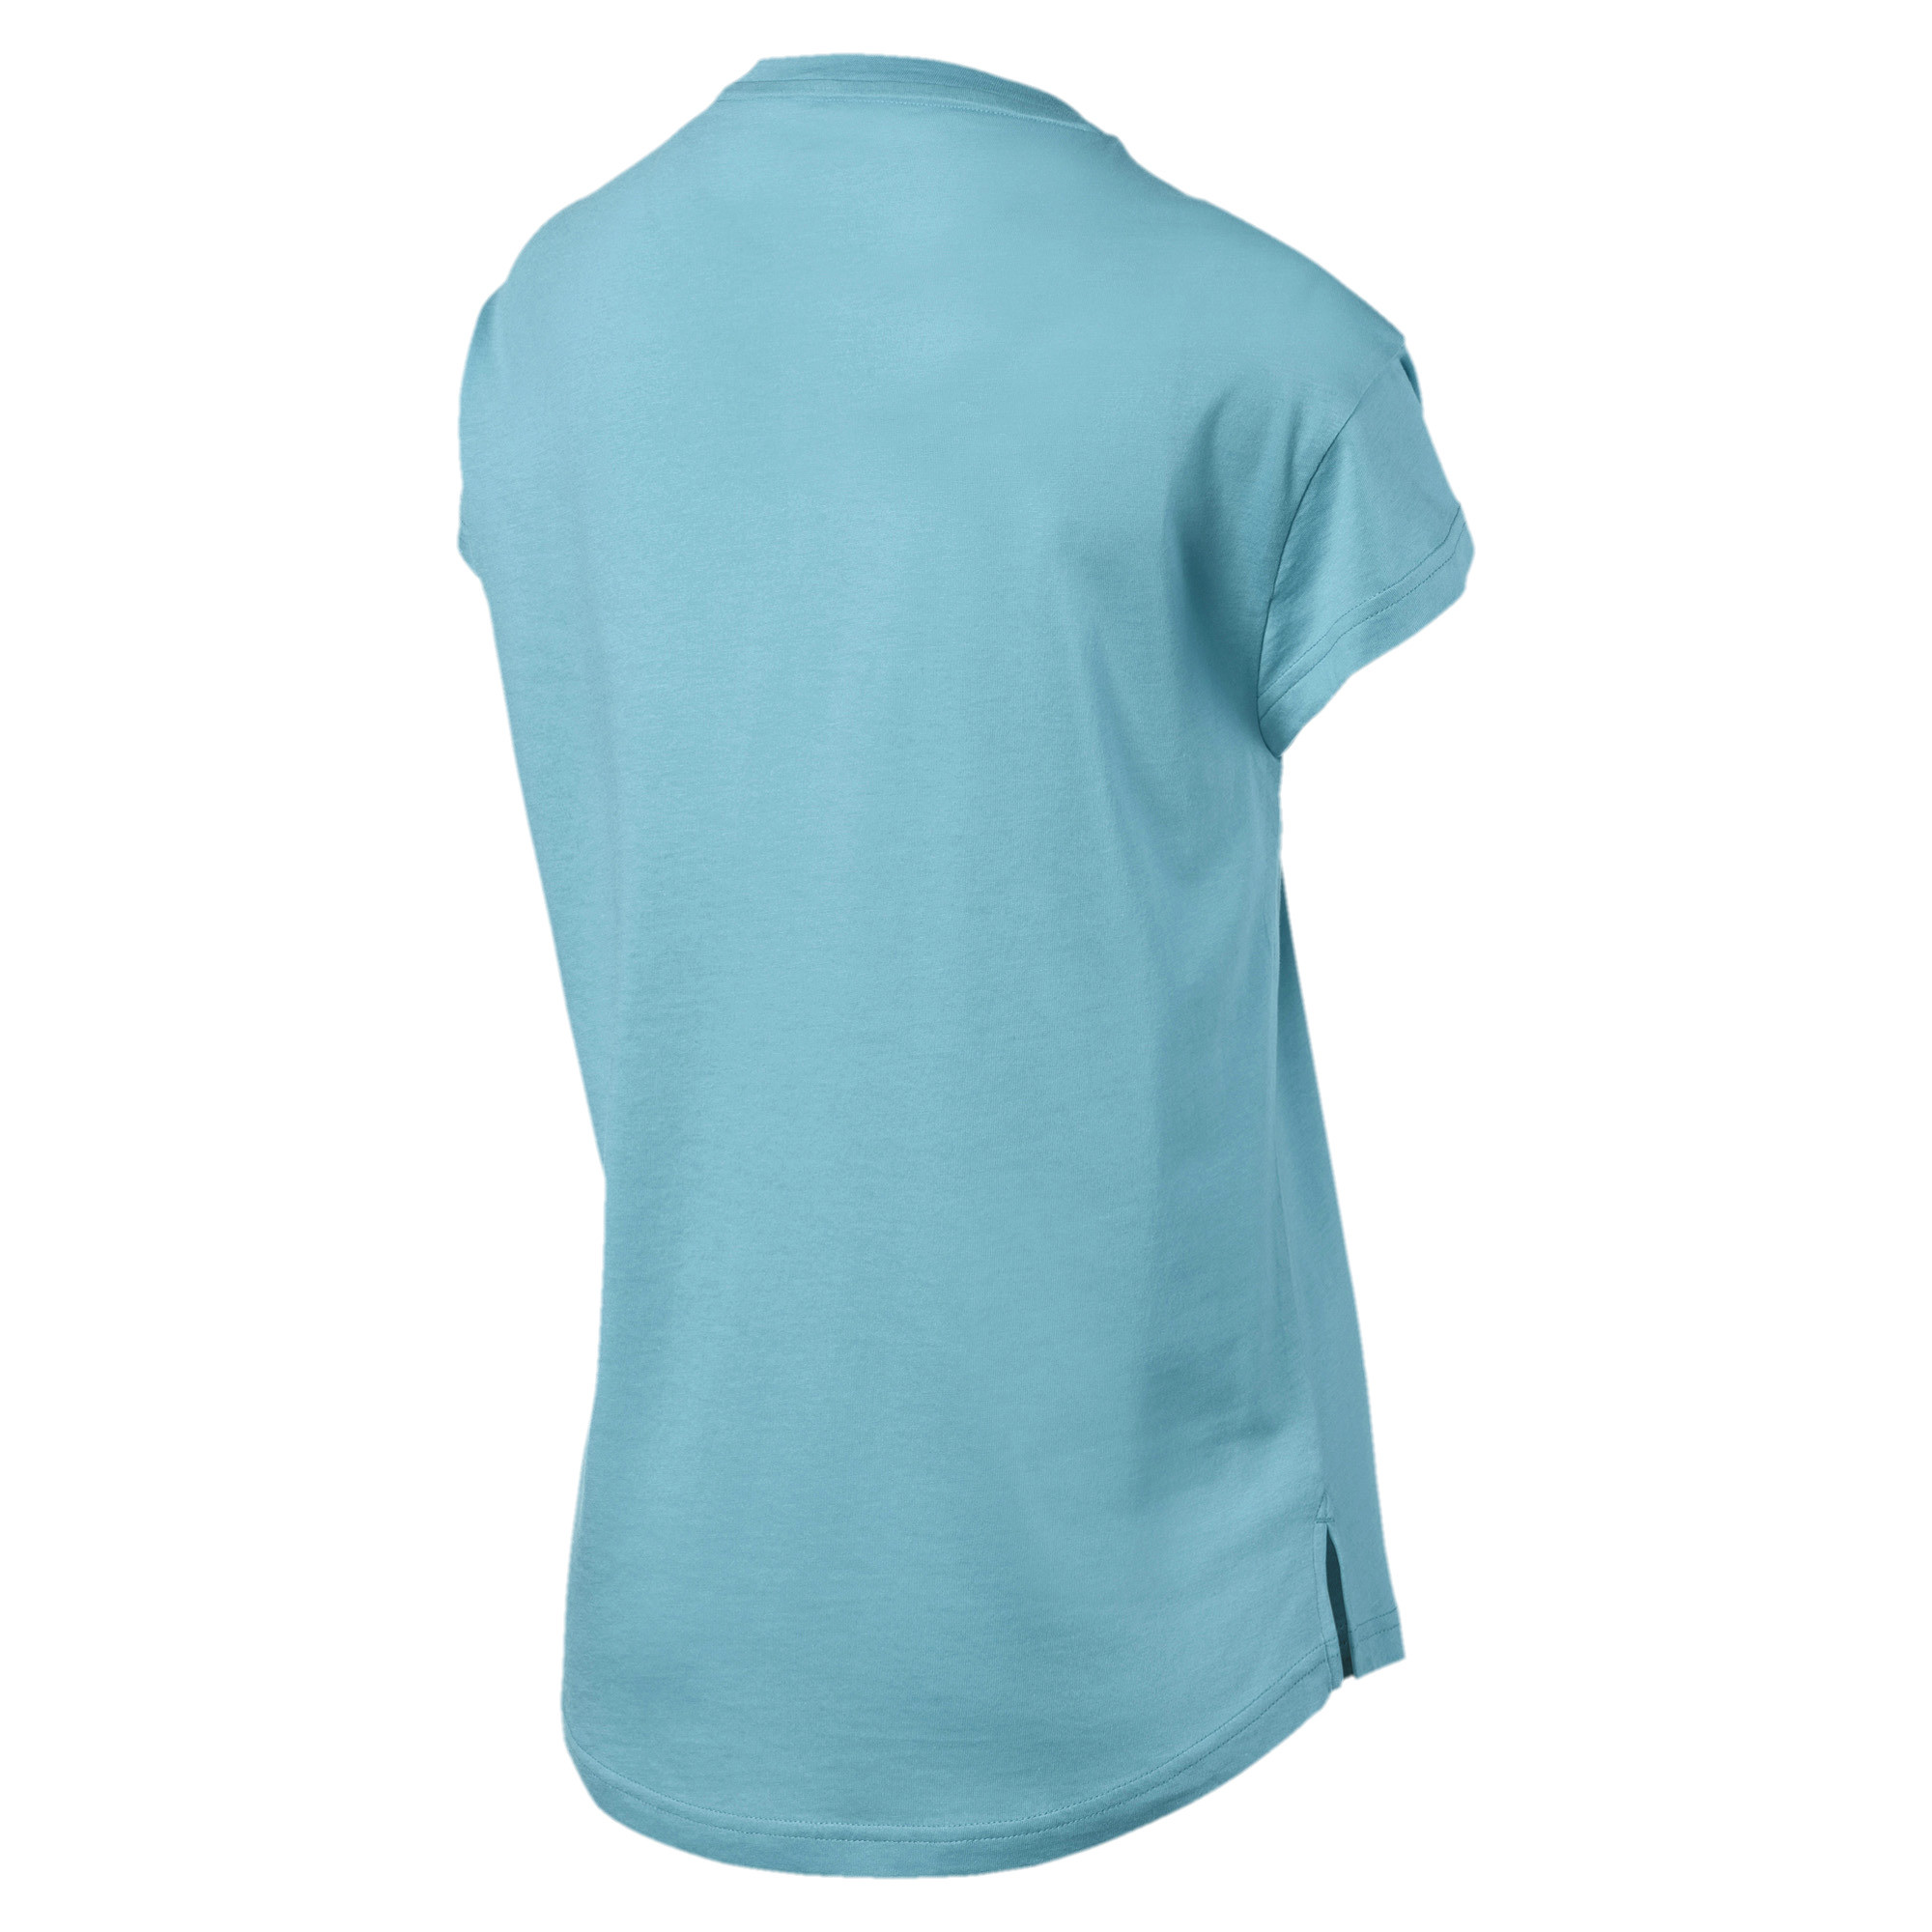 PUMA-Modern-Sports-Women-039-s-Graphic-Tee-Women-Tee-Basics thumbnail 13